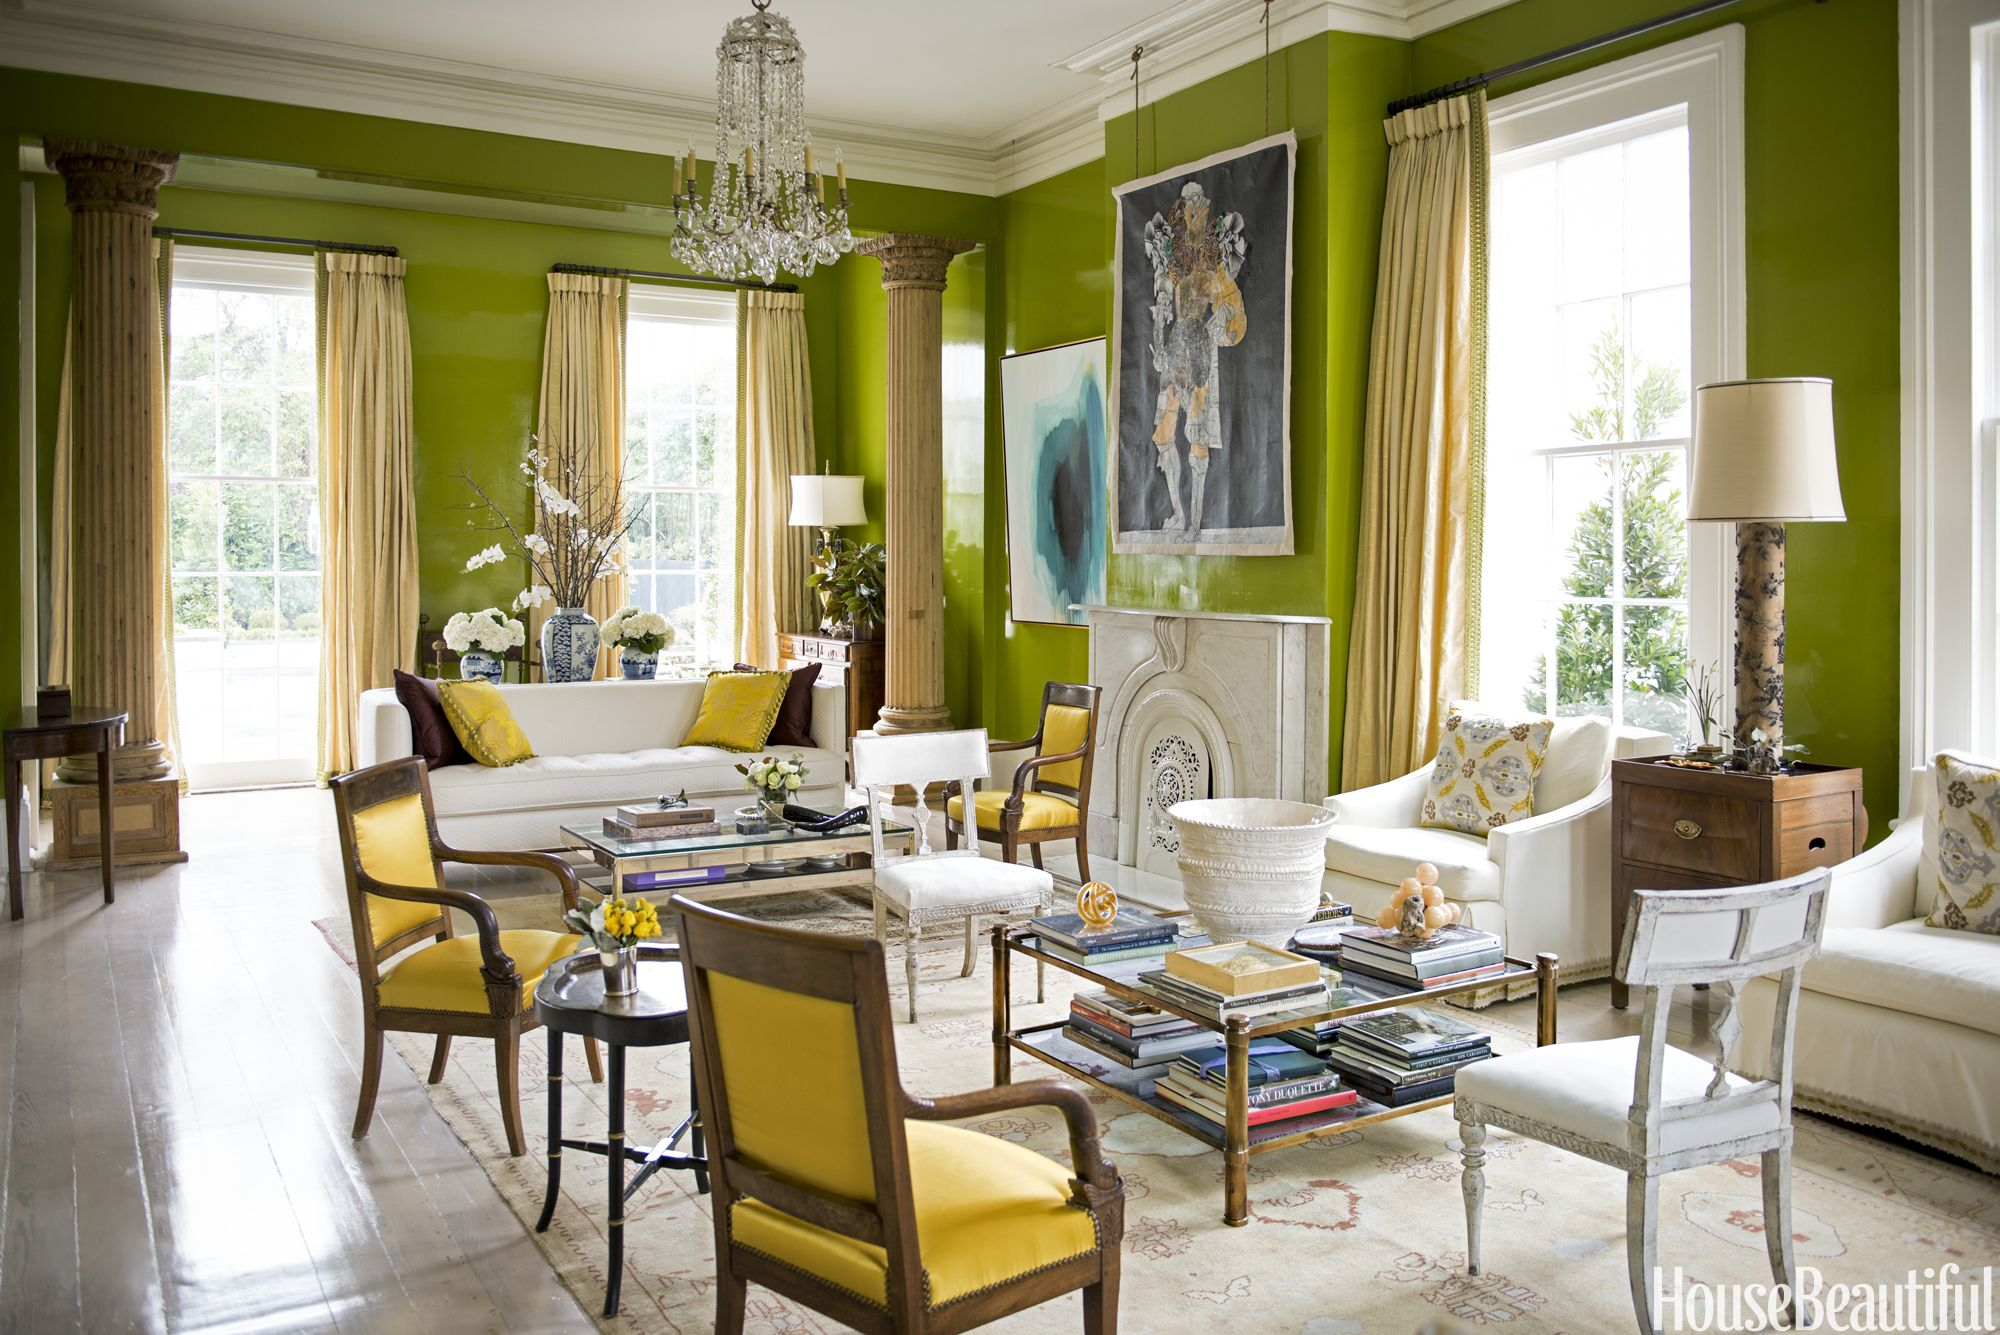 Pleasing Tour A Historic New Orleans House Full Of Striking Colors Download Free Architecture Designs Xerocsunscenecom